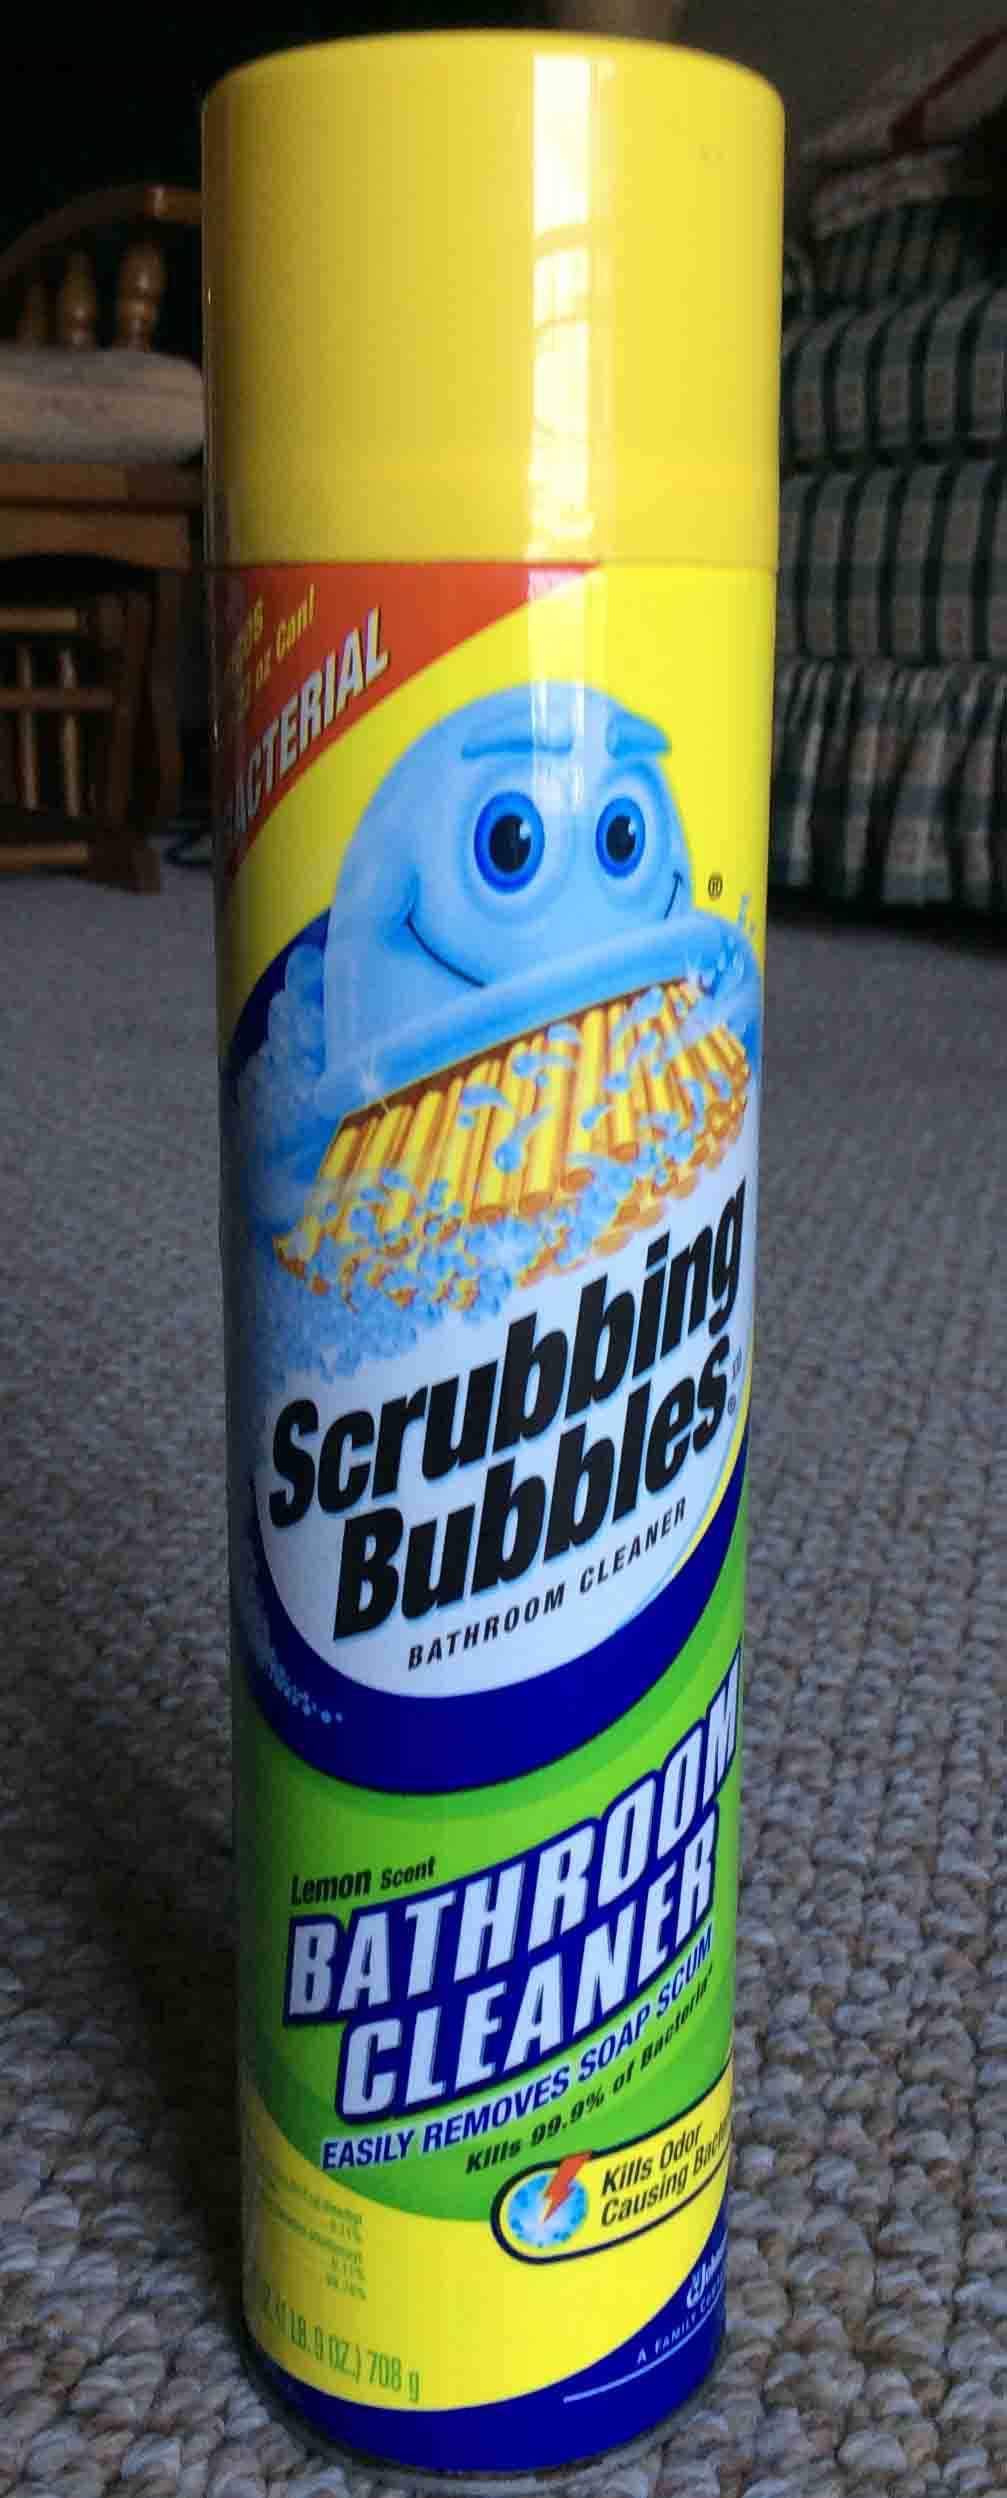 Picture Of Scrubbing Bubbles Antibacterial Bathroom Cleaner By SC Johnson  Company, Showing The Front Of